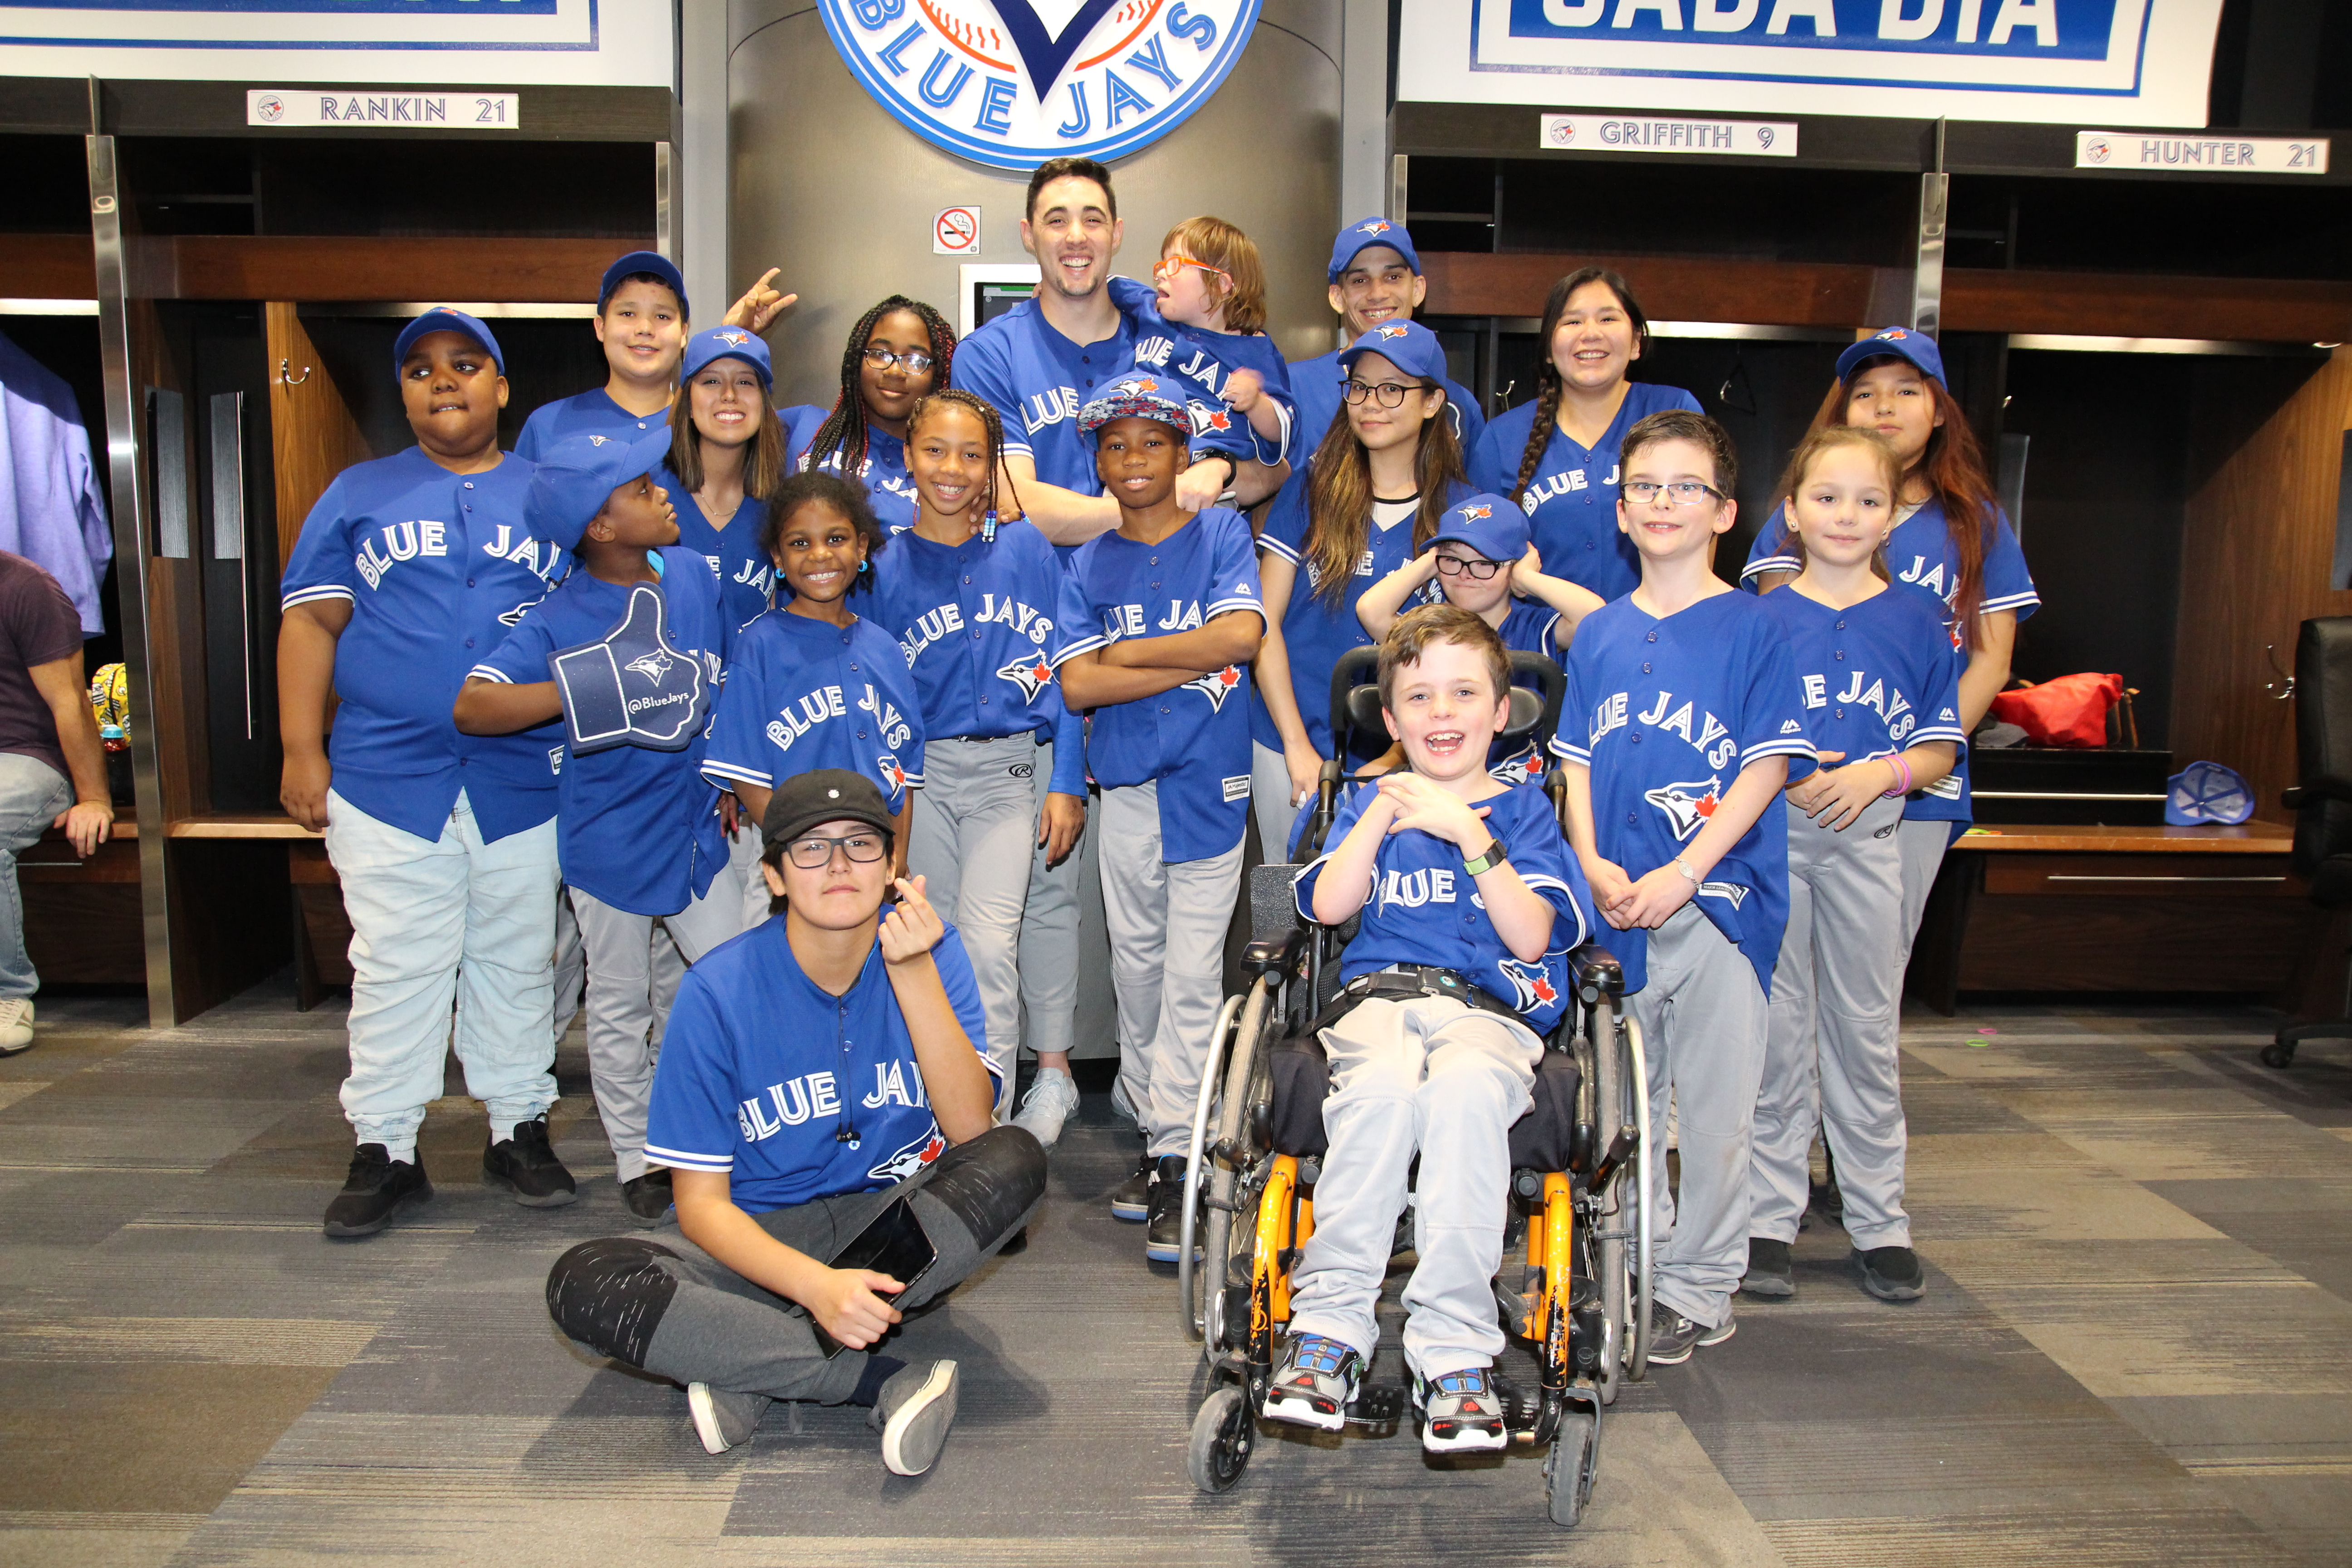 Unstoppable Kids pose in Blue Jays uniforms with Blue Jays pitcher Aaron Sanchez